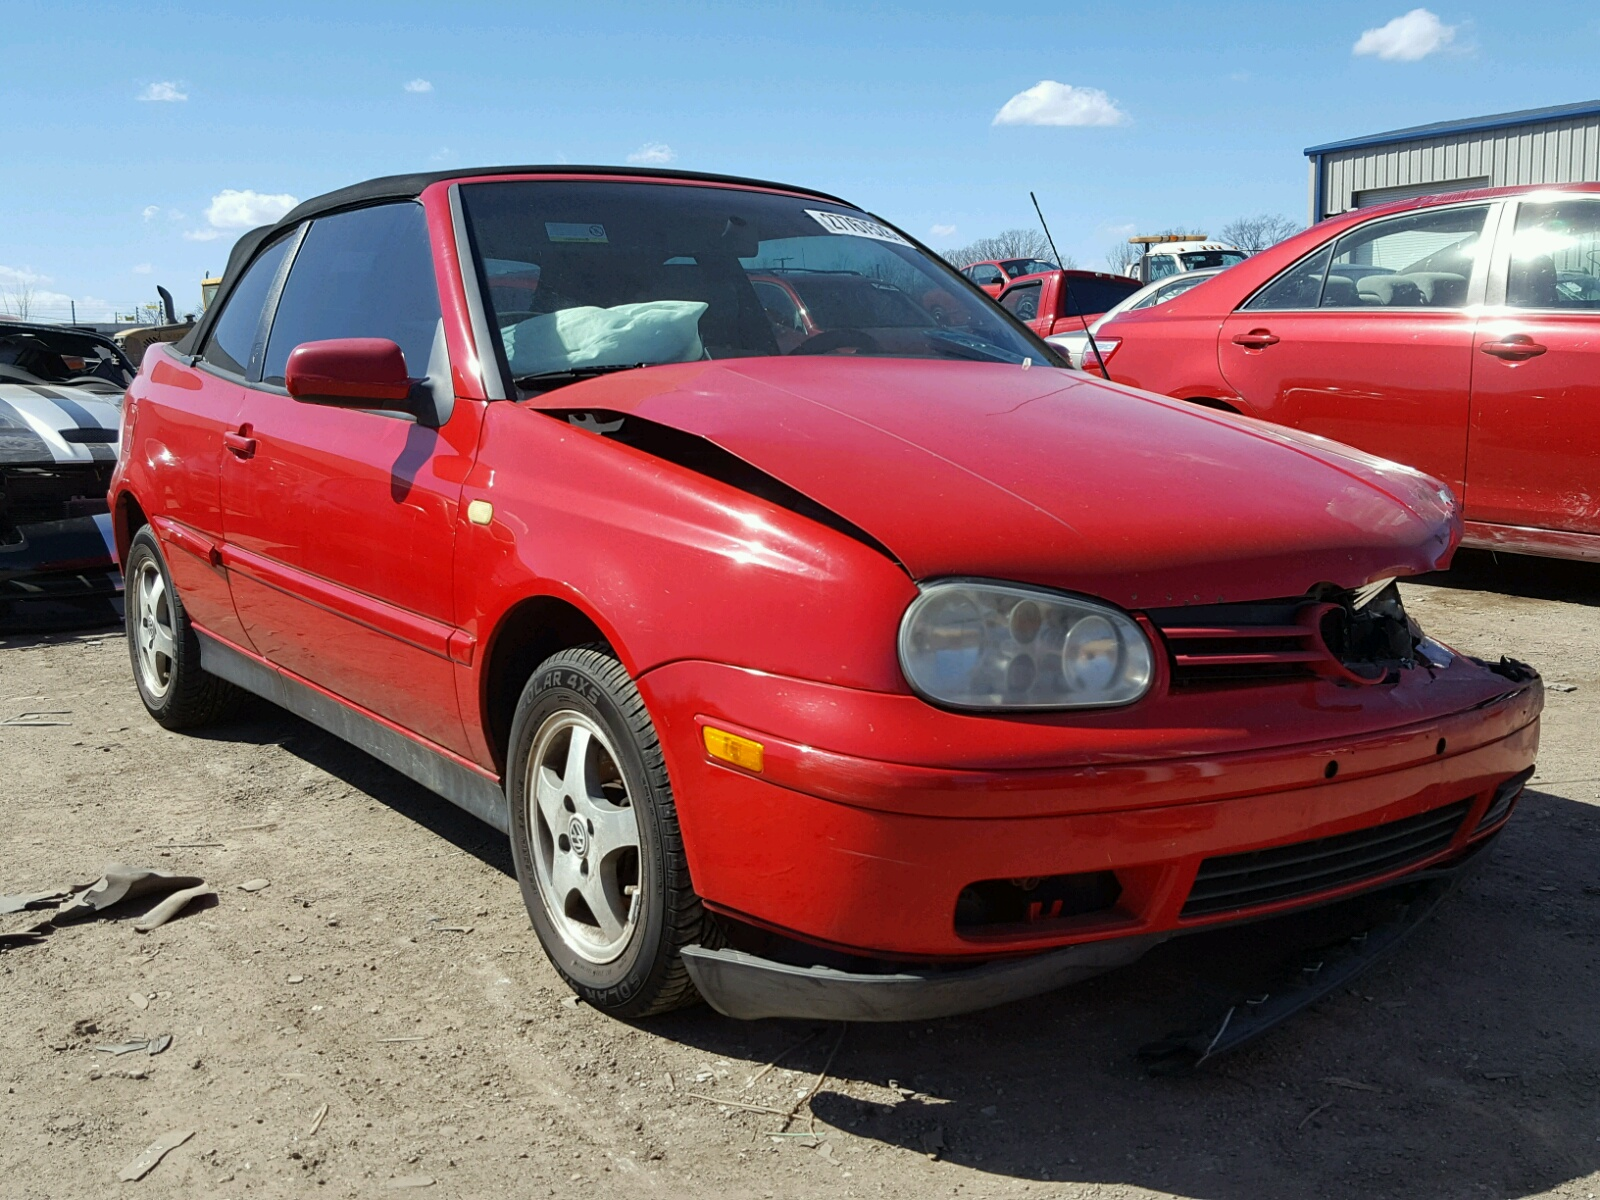 gti faeb lot ky louisville volkswagen sale s copart at cars for